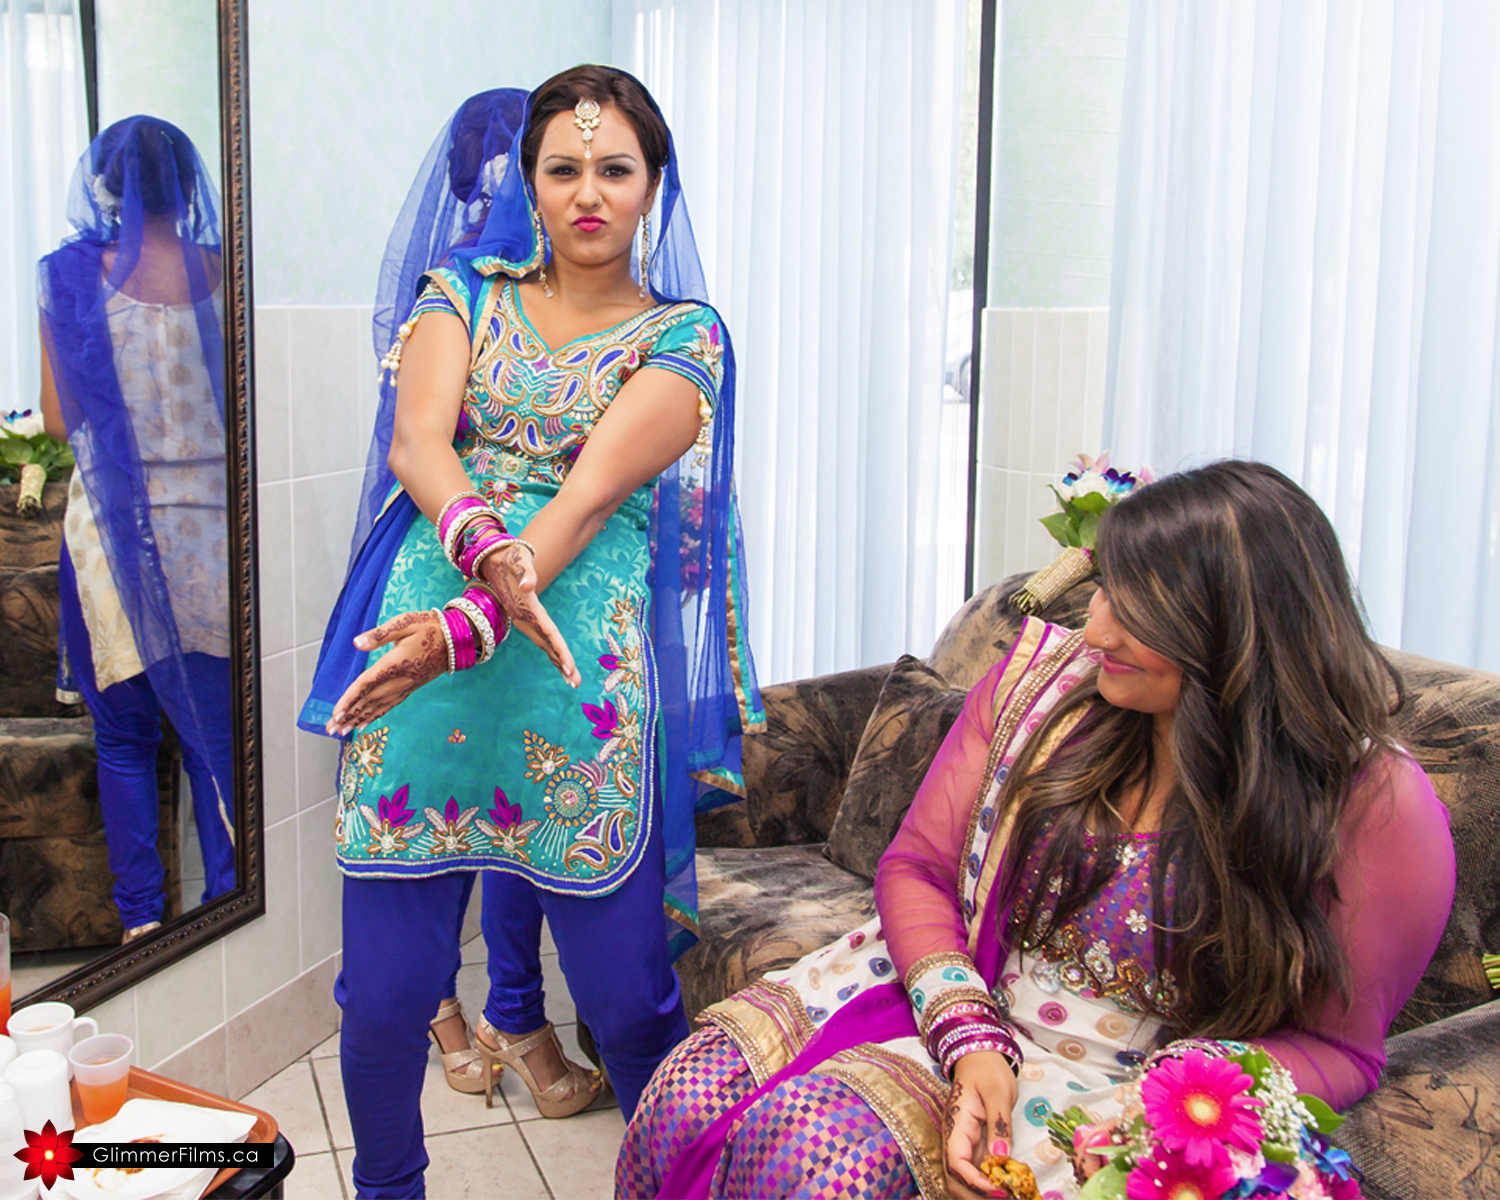 Bhupinder & Gurvina - Asian Wedding Ideas